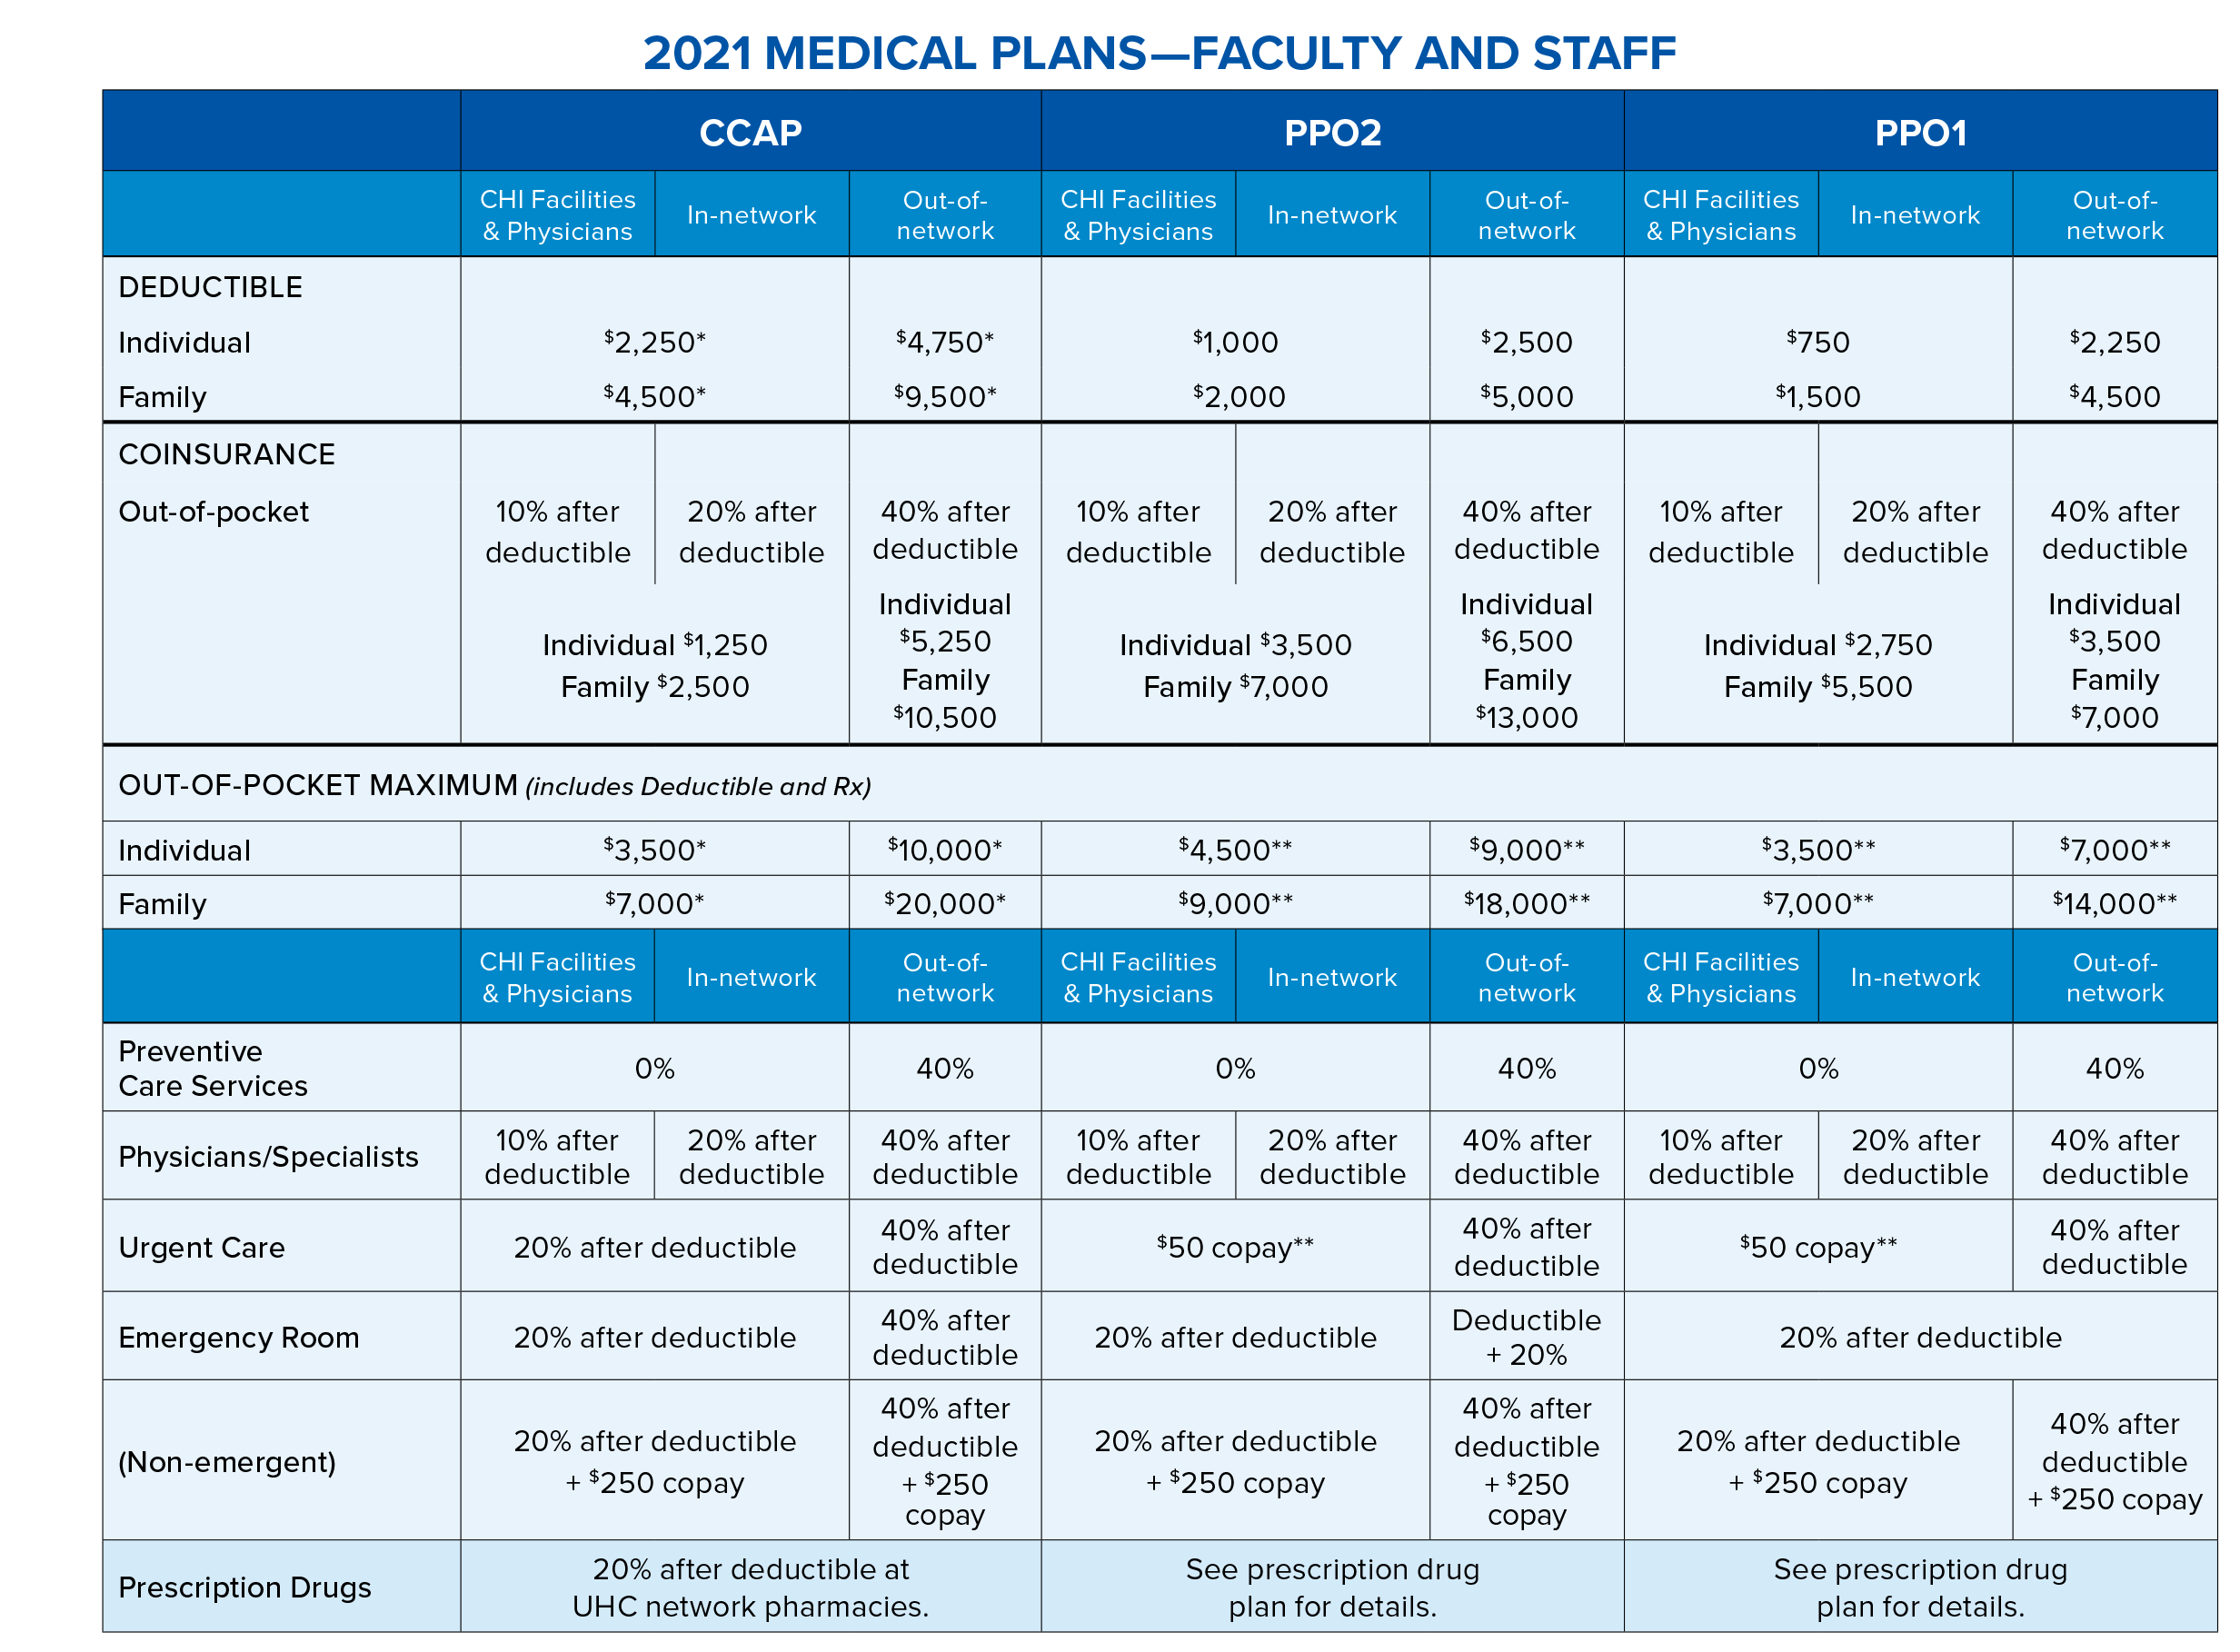 2021 medical plans - faculty and staff